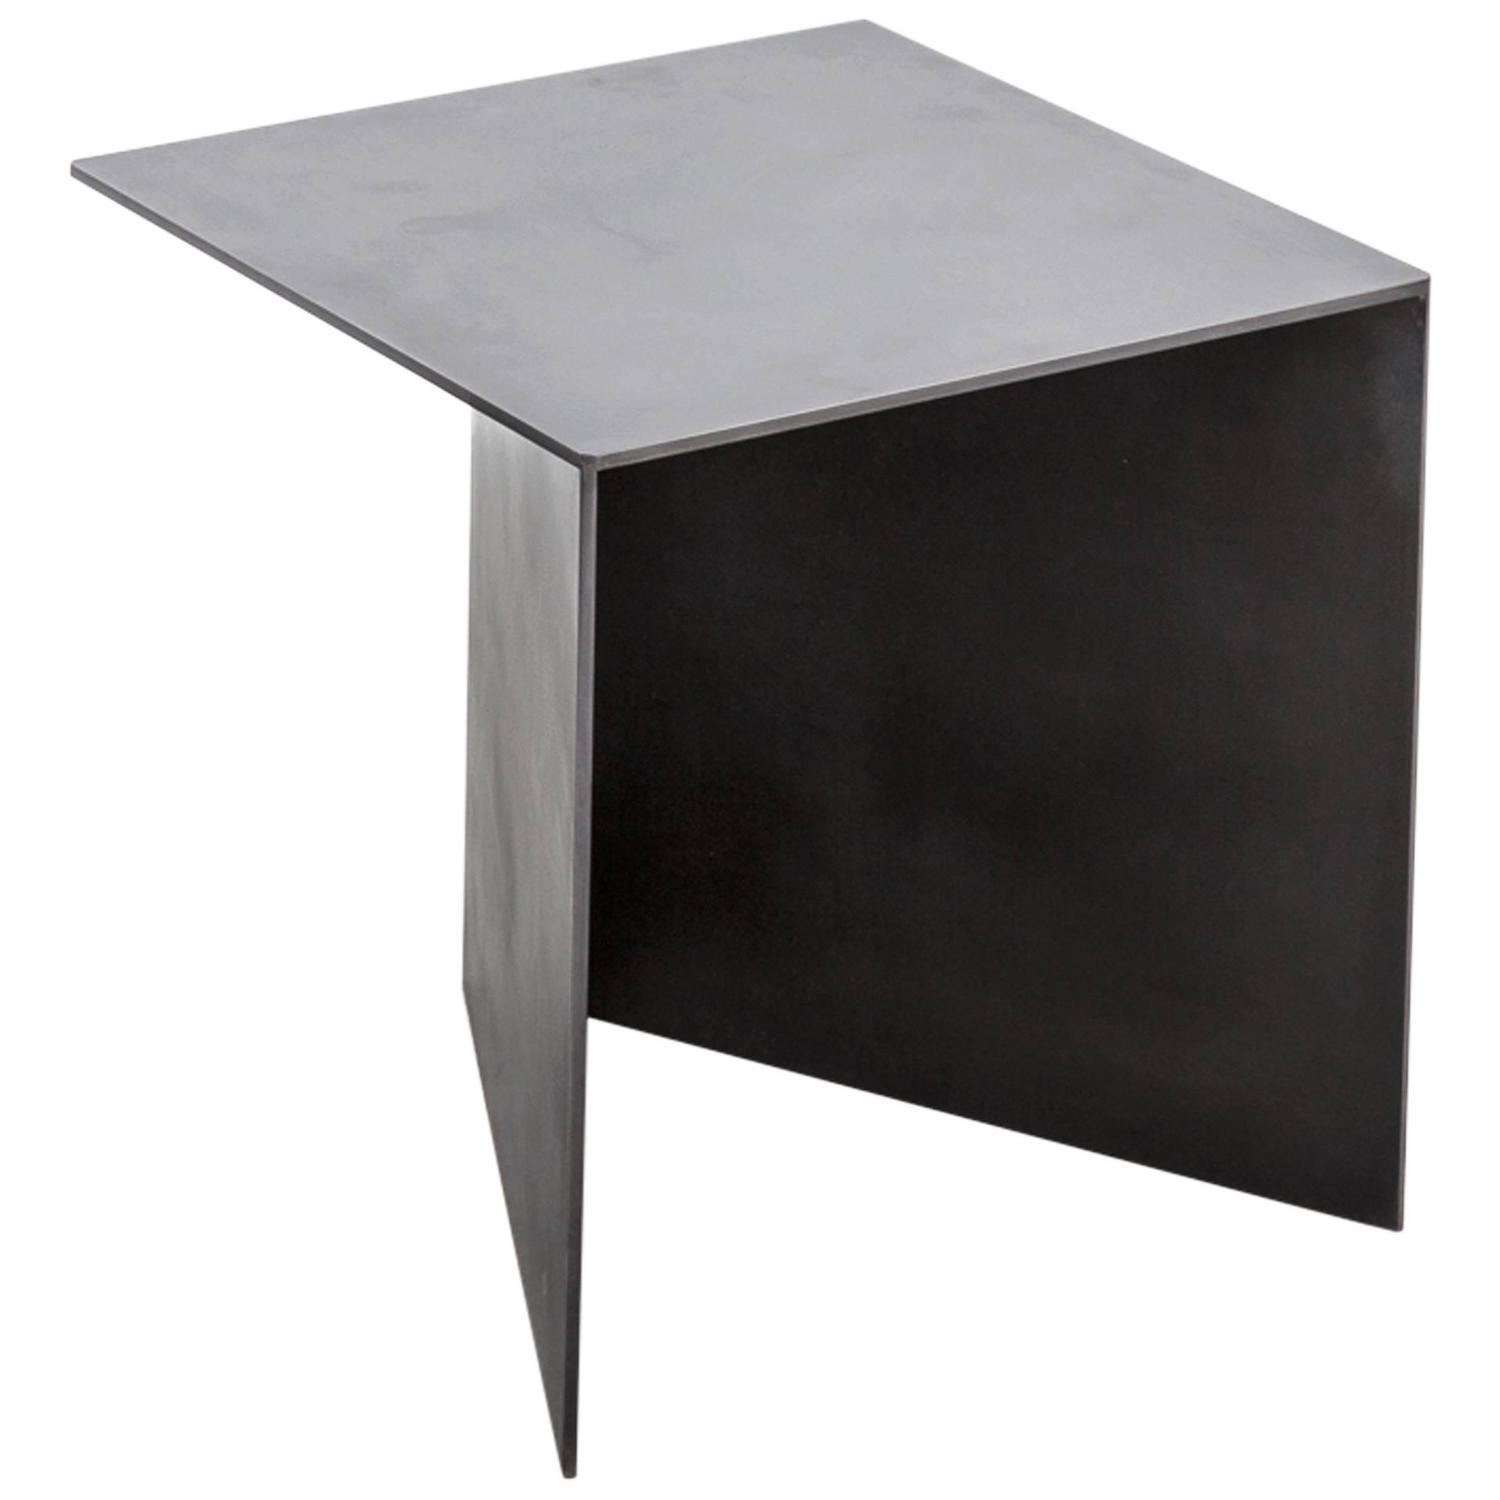 Tack End Table C By Uhuru Design, Hand Blackened Steel For Sale At 1stdibs